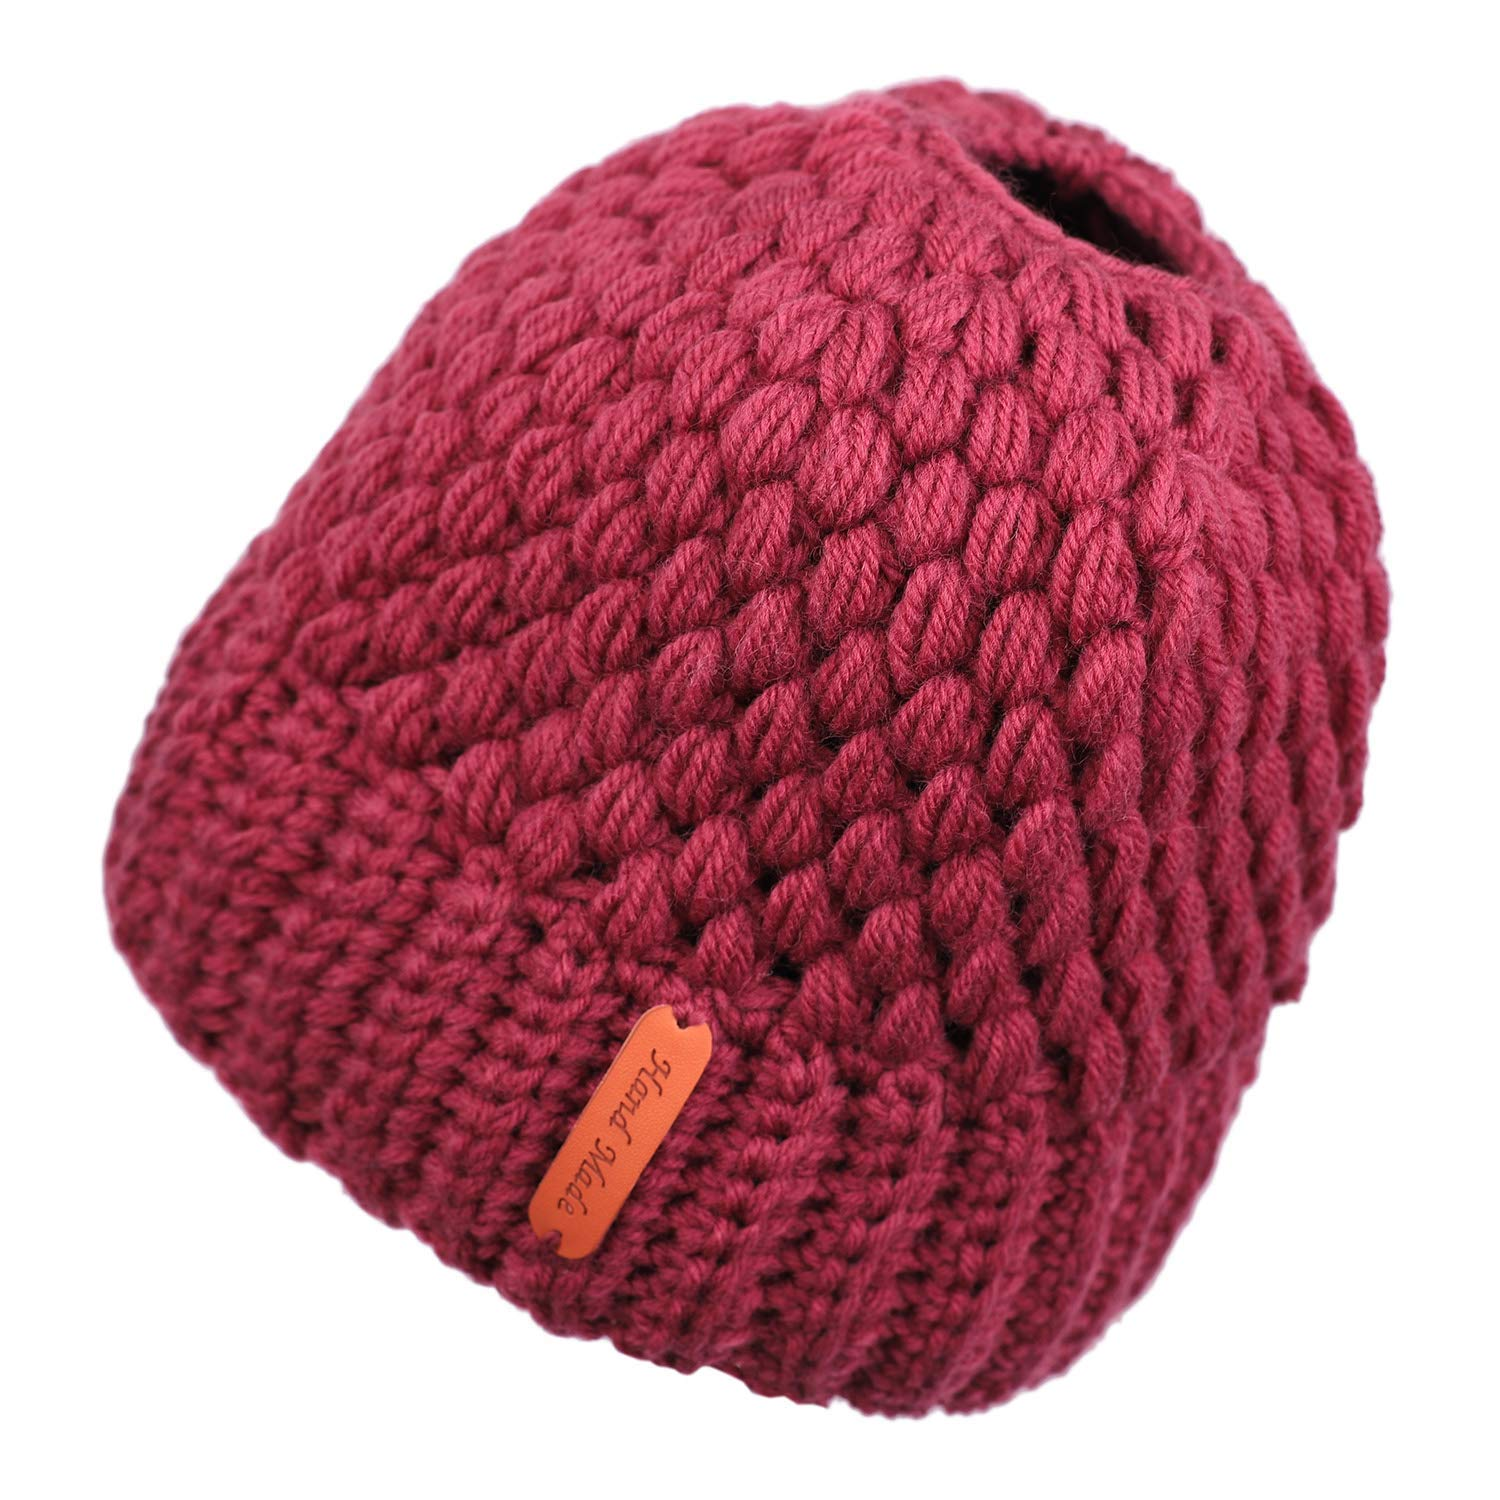 1ef06129b70 Get Quotations · Flammi Women s Soft Stretch Crochet High Bun Ponytail Beanie  Hat